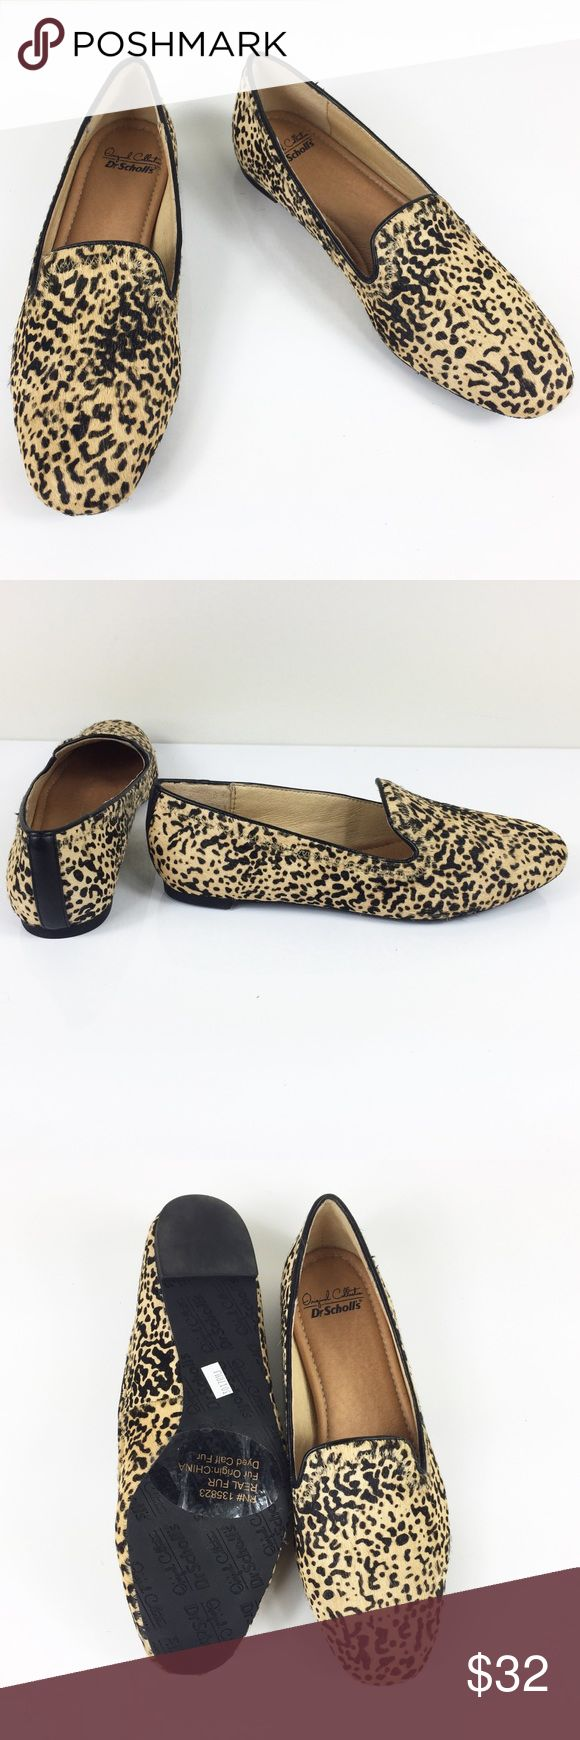 NWOB DR SCHOLL'S REAL FUR LEOPARD PRINT LOAFERS NWOB DR SCHOLL'S REAL FUR LEOPARD PRINT DRIVING LOAFERS FLATS in size 7. Brand new without box, absolutely flawless, made with real fur. Make an offer! Dr. Scholl's Shoes Flats & Loafers